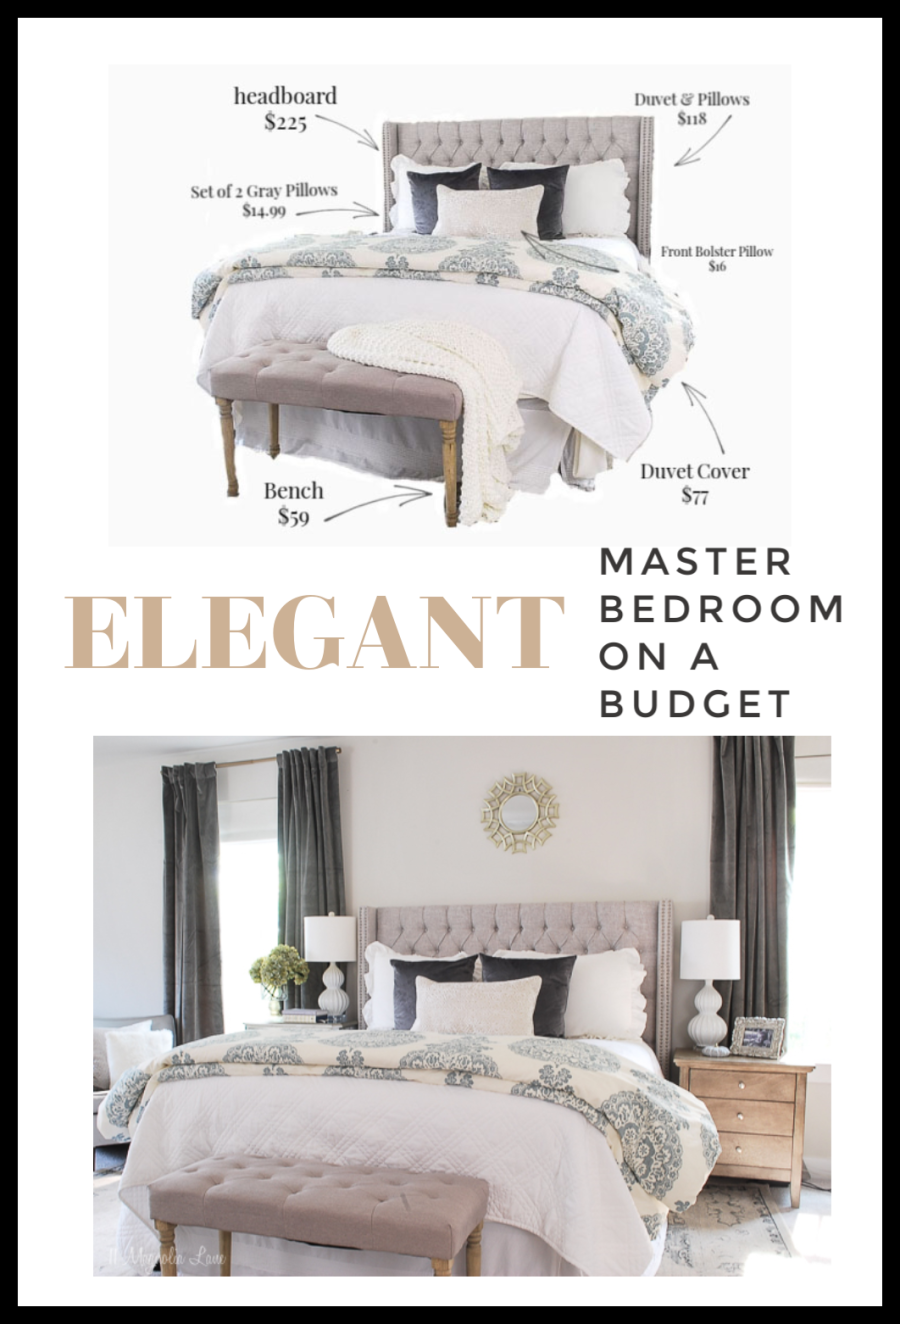 How To Decorate Your Master Bedroom On A Budget Elegant Bedroom